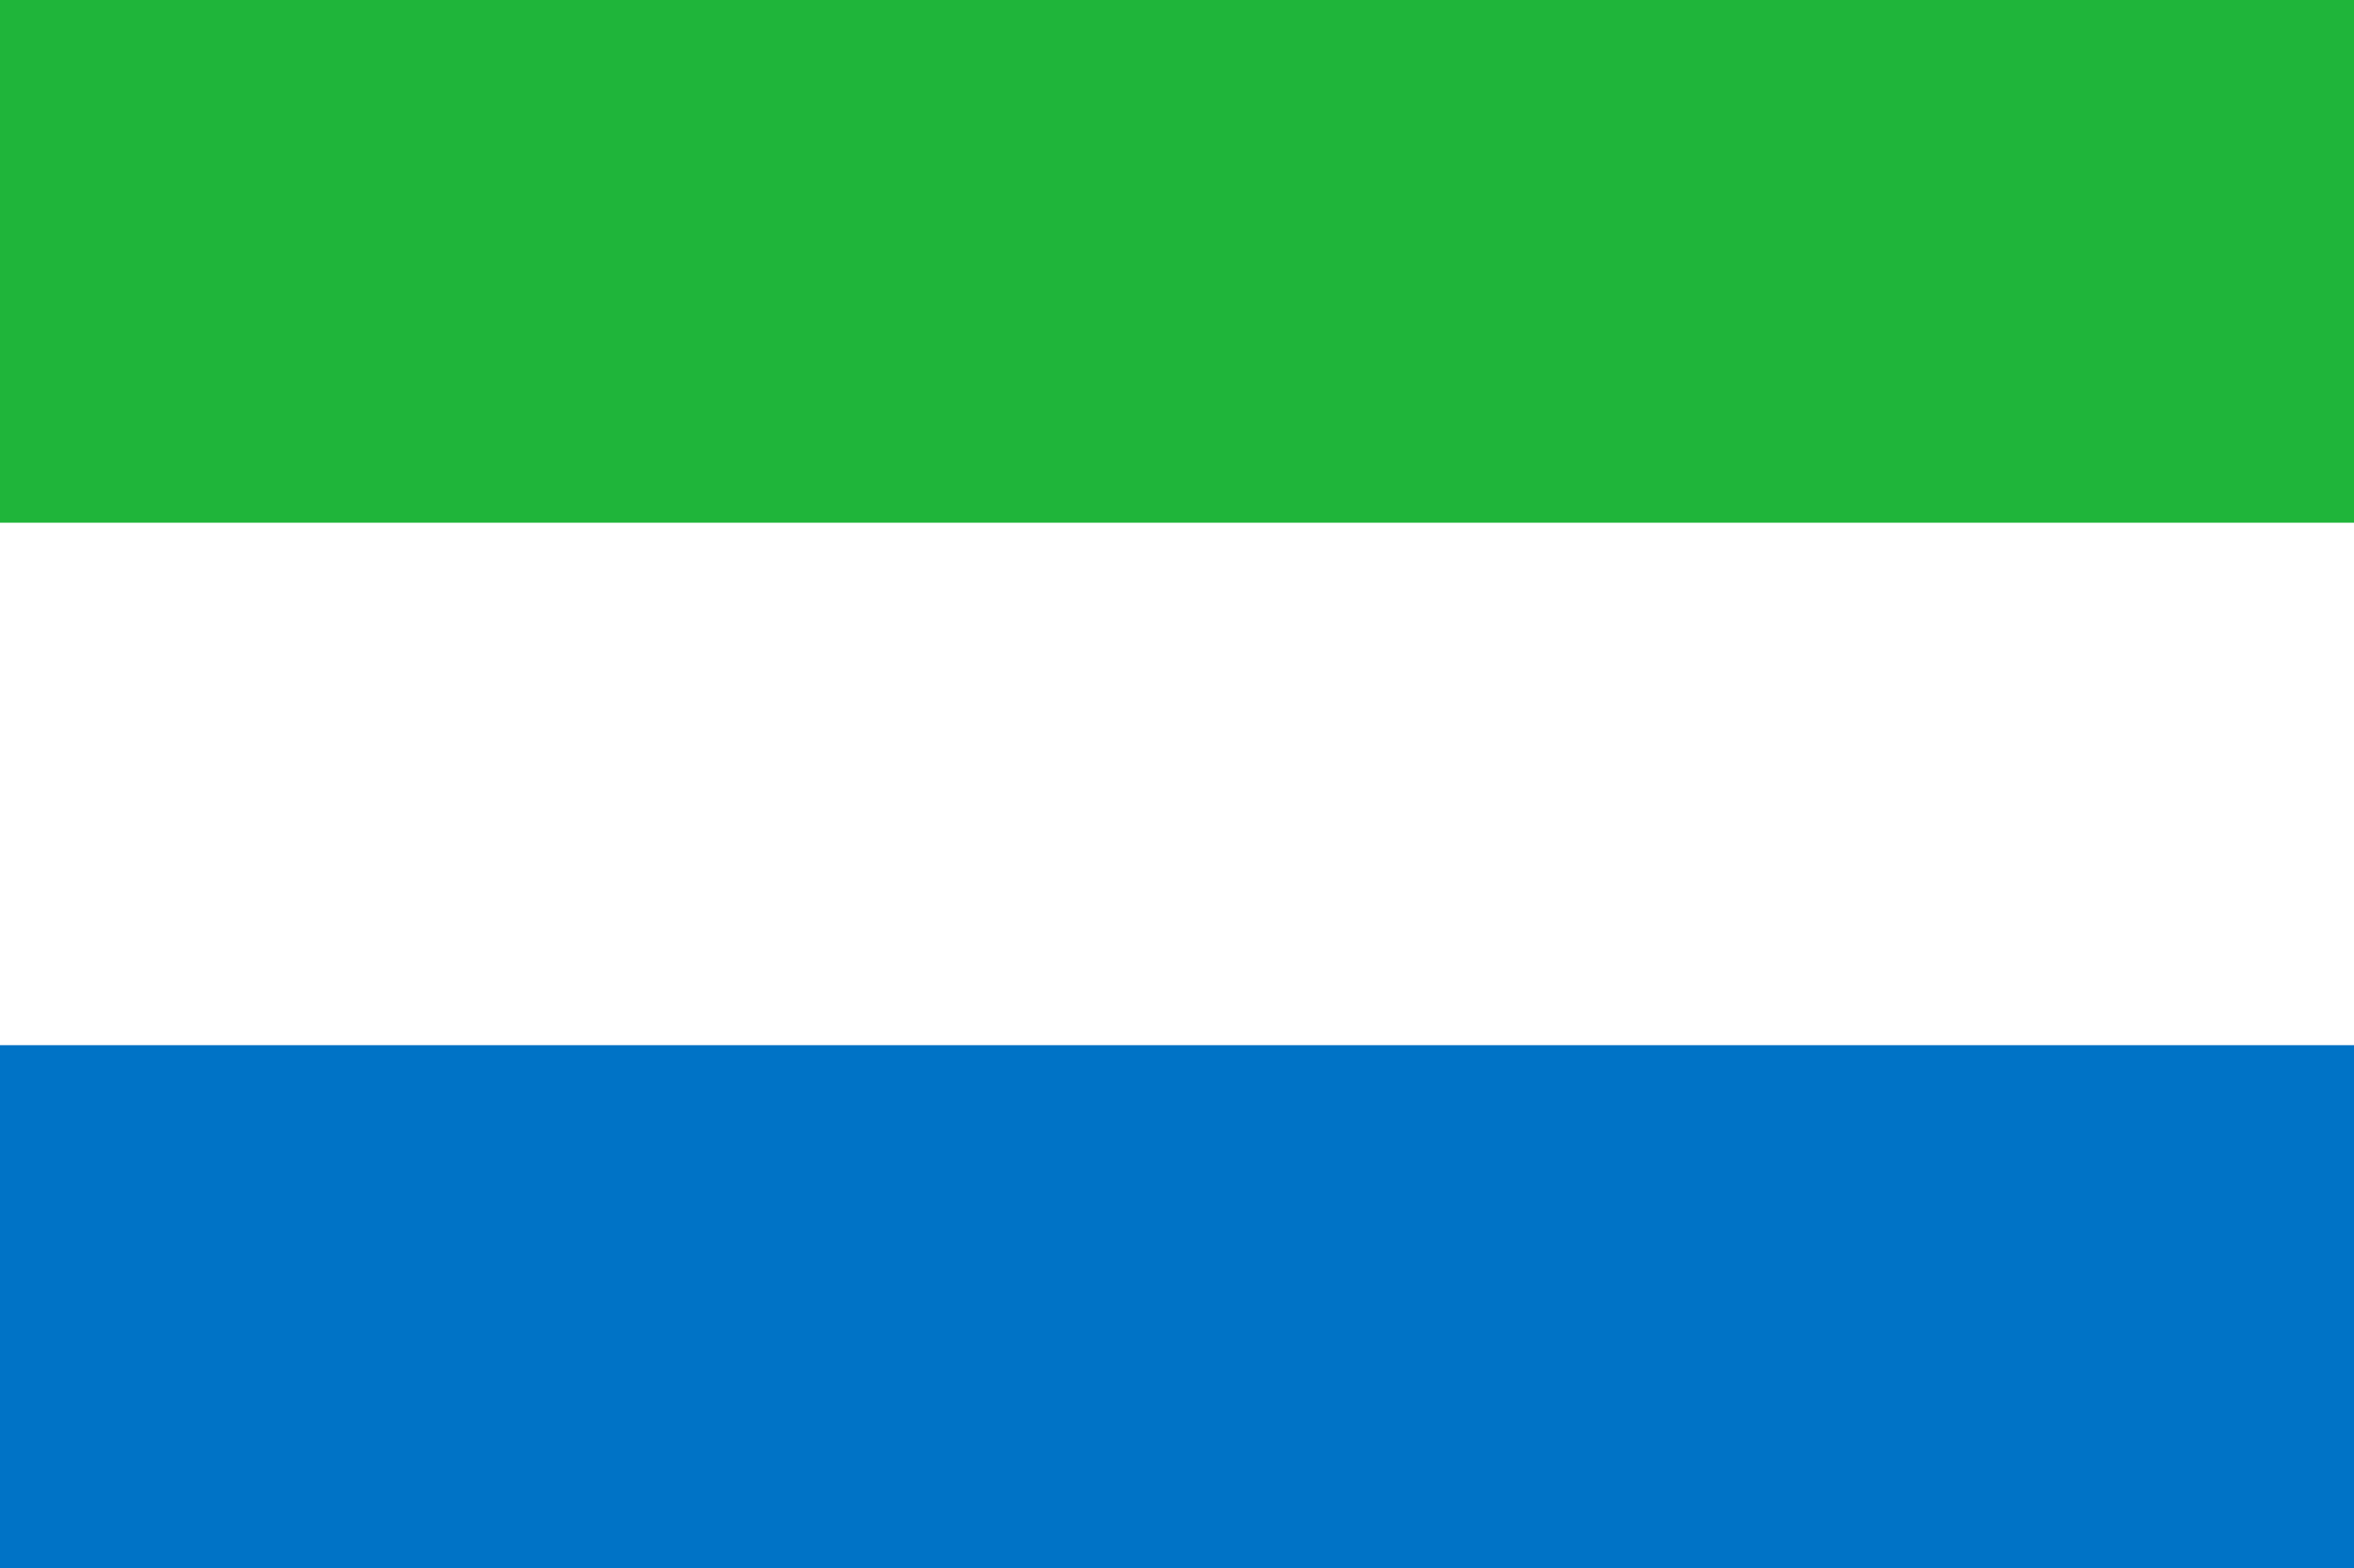 The flag of Sierra Leone.